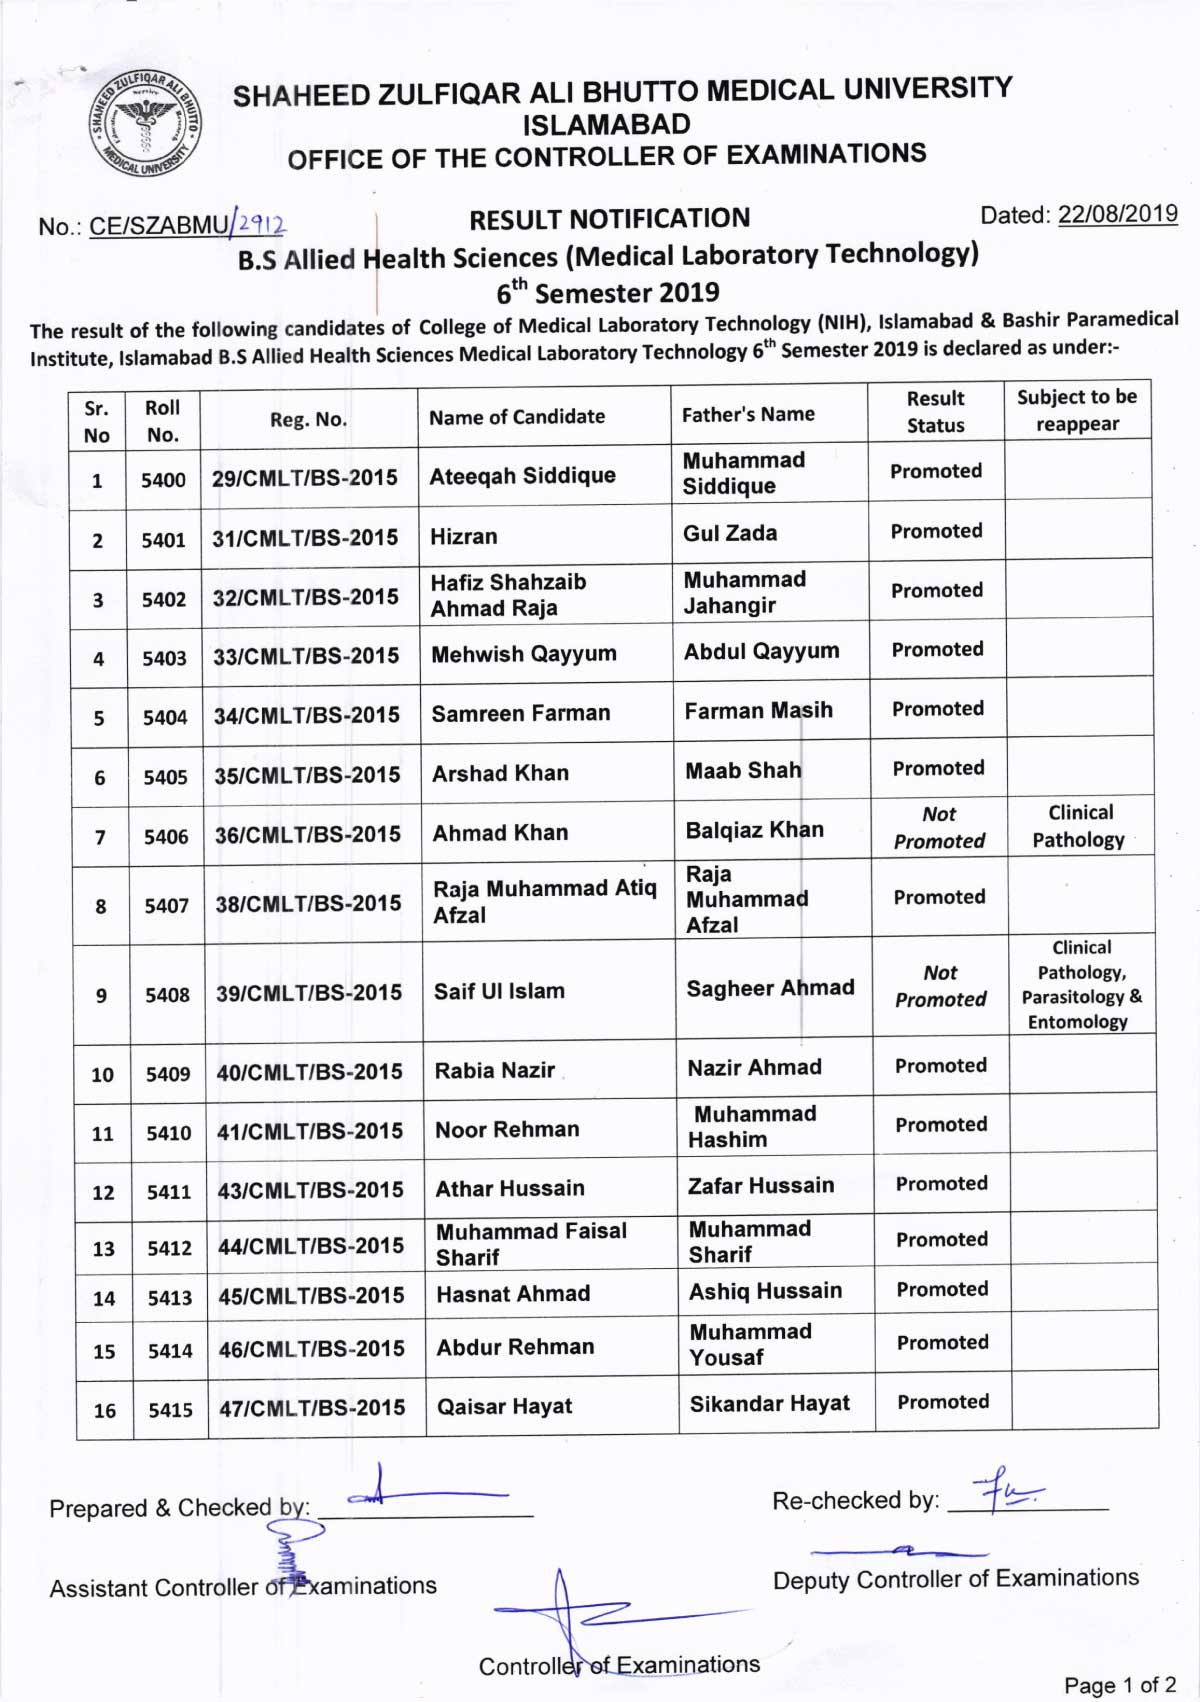 Result Notification of BS Allied Health Sciences (MLT) 6th Semester 2019